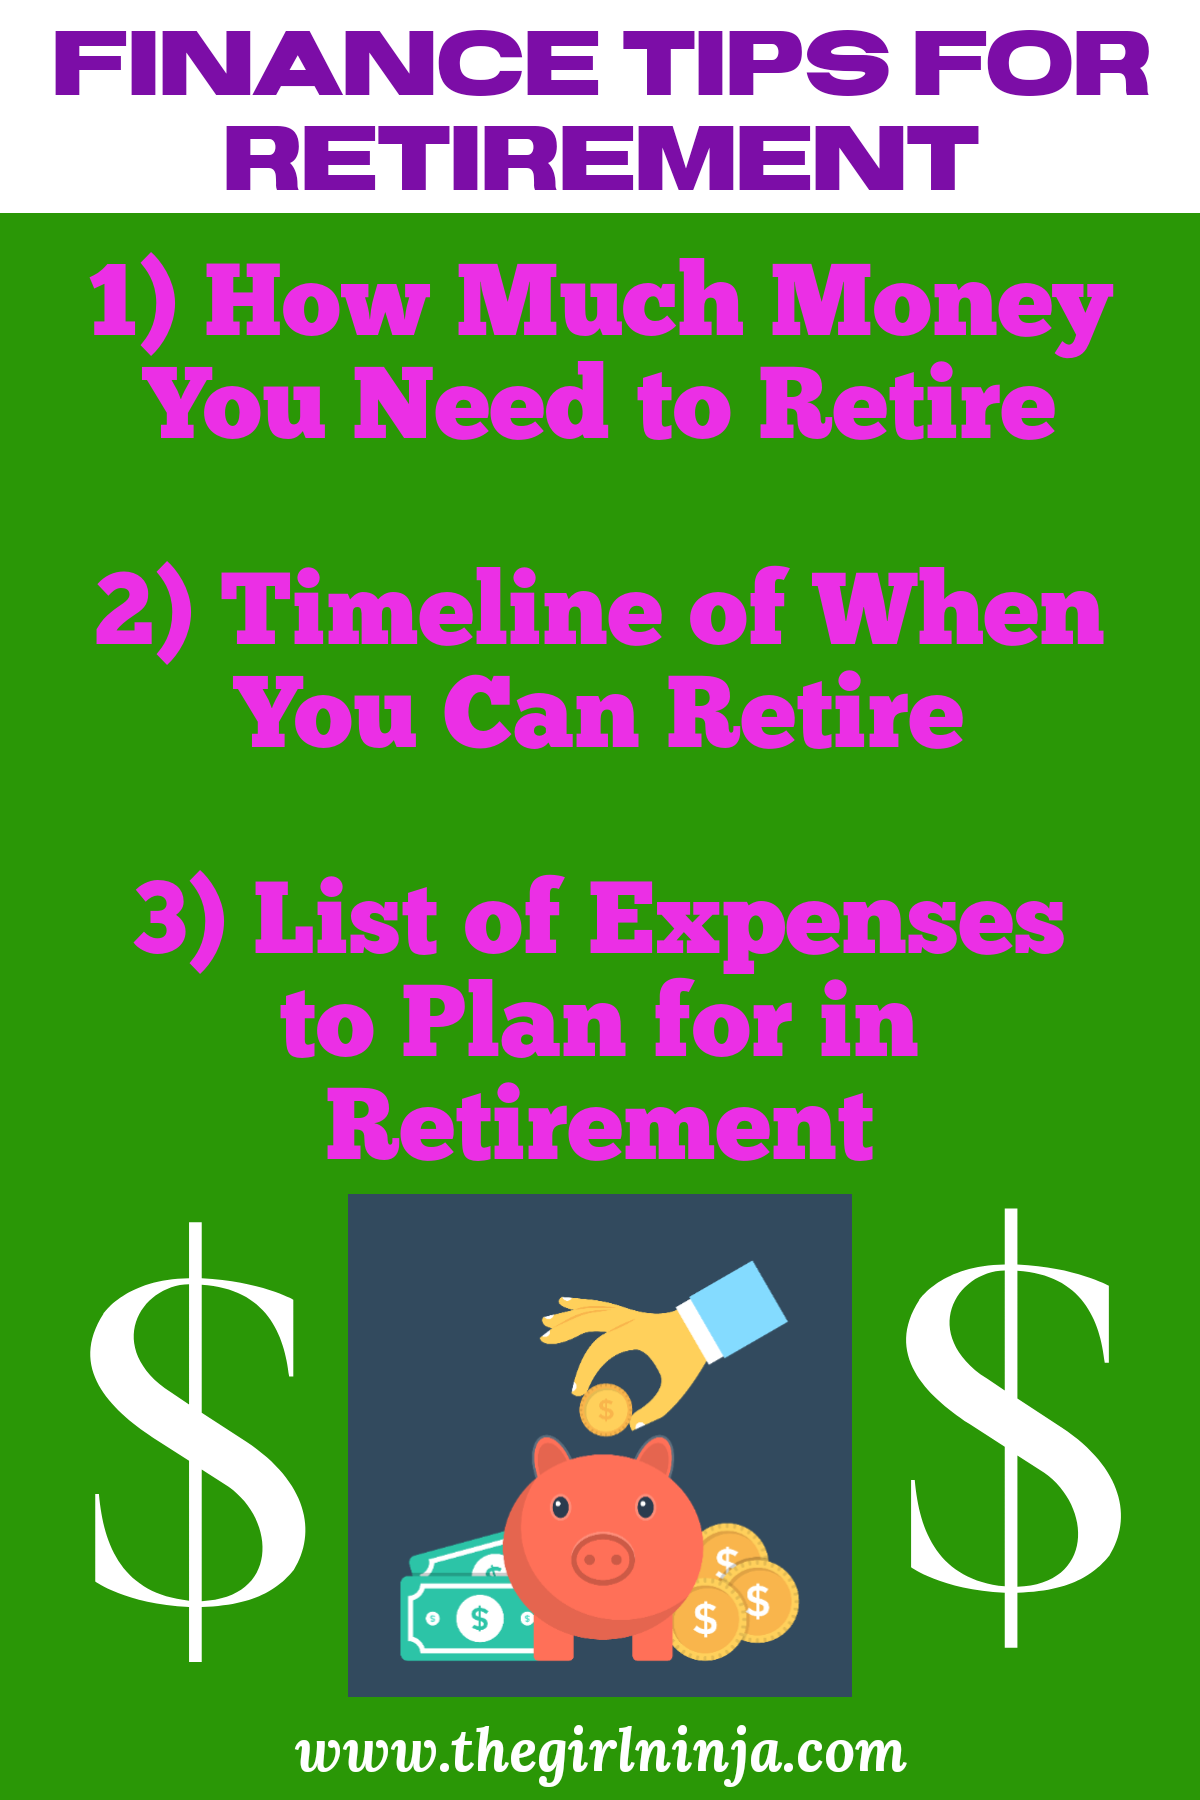 Purple text reads FINANCE TIPS FOR RETIREMENT above a green rectangle with pink text that reads 1) How Much Money You Need to Retire?  2) Timeline of When You Can Retire  3) List of Expenses to Plan for in Retirement. Below text Hand holds a gold coin over a pink piggy bank with gold coins and dollar bills along the sides of the bank. White text at bottom center reads www.thegirlninja.com